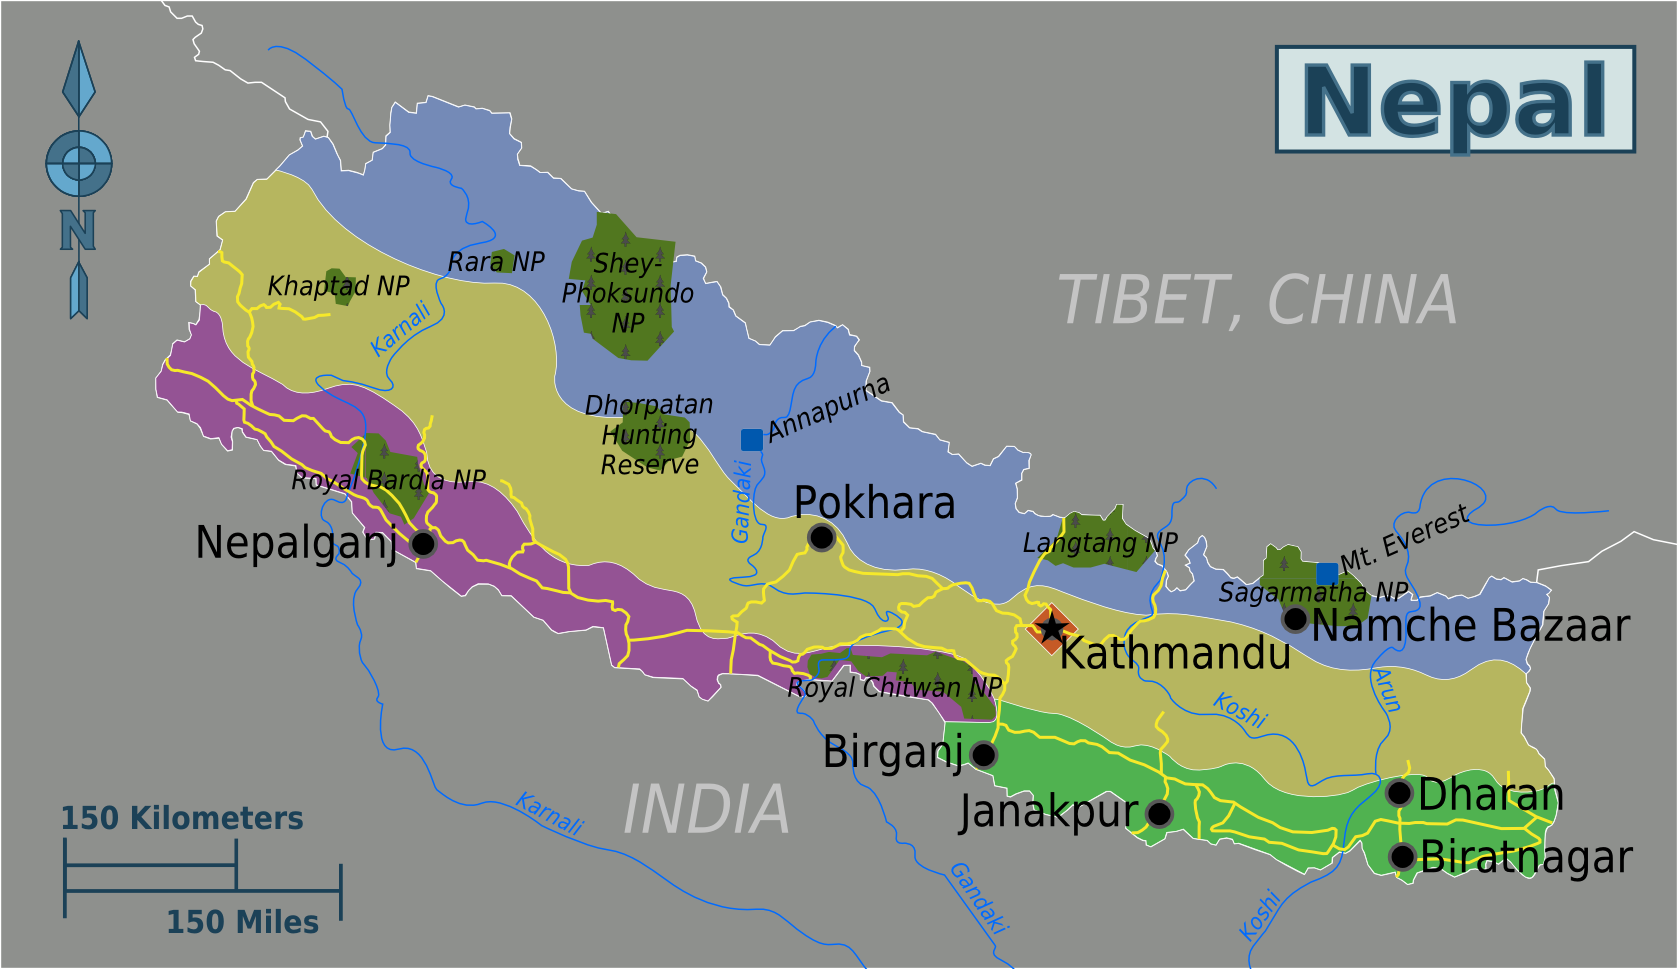 Nepal Karte Download.Map Of Nepal Map Regions Worldofmaps Net Online Maps